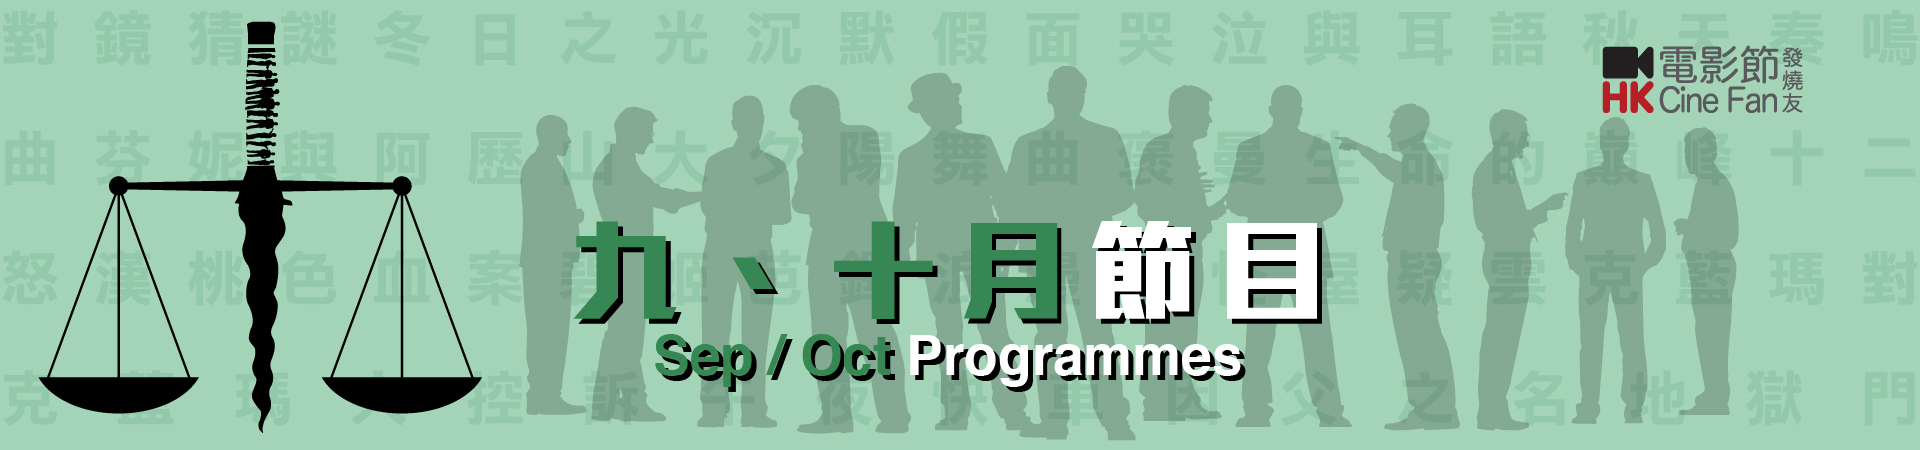 2015 HKIFF Students Summer Programme Highlights at The ...